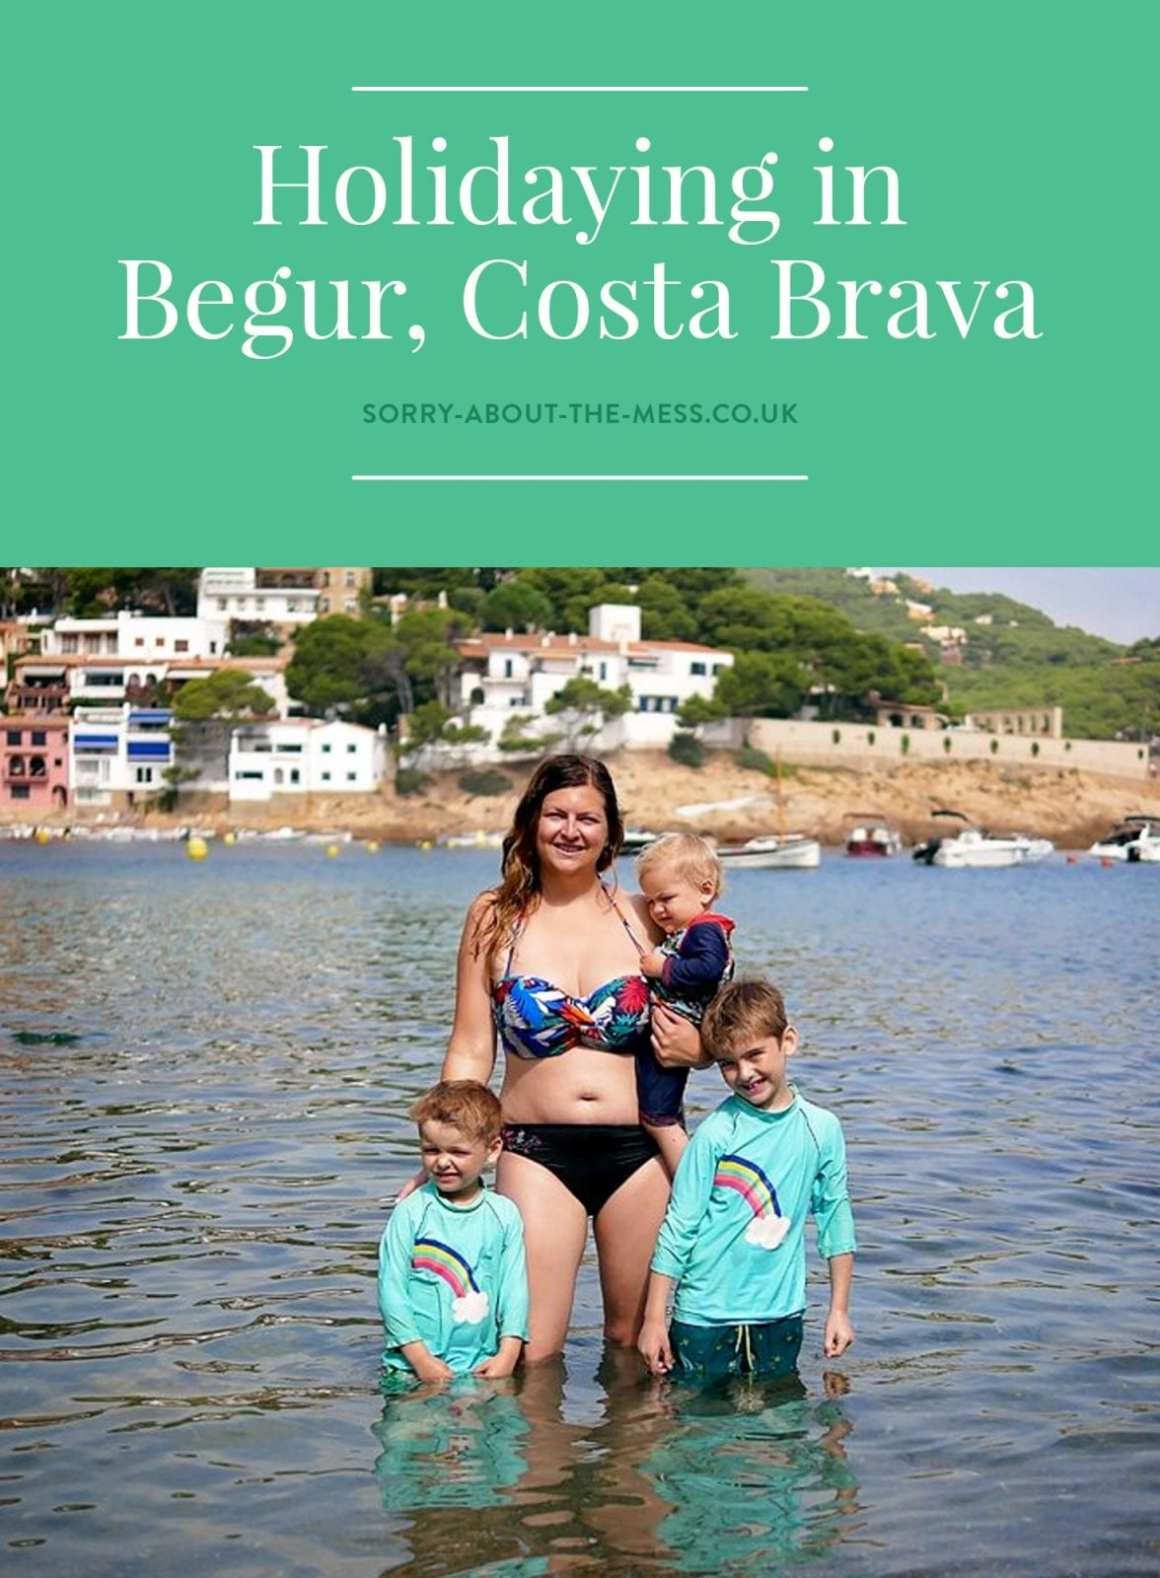 Holiday in Begur, Costa Brava